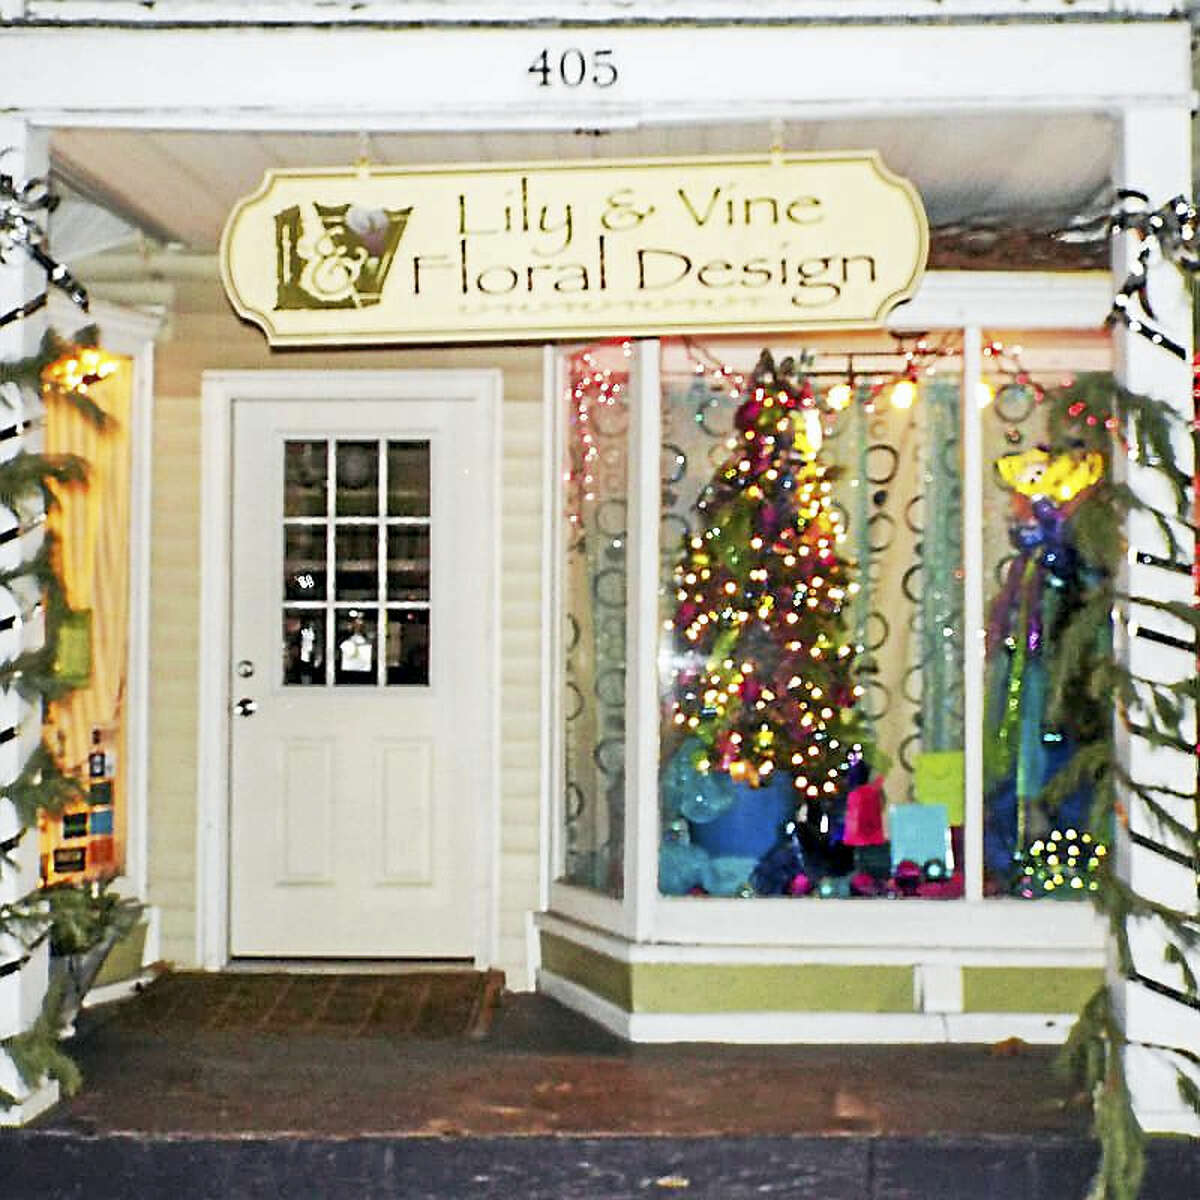 Contributed photosLily & Vine placed first in the commercial category of the holiday decorating contest.